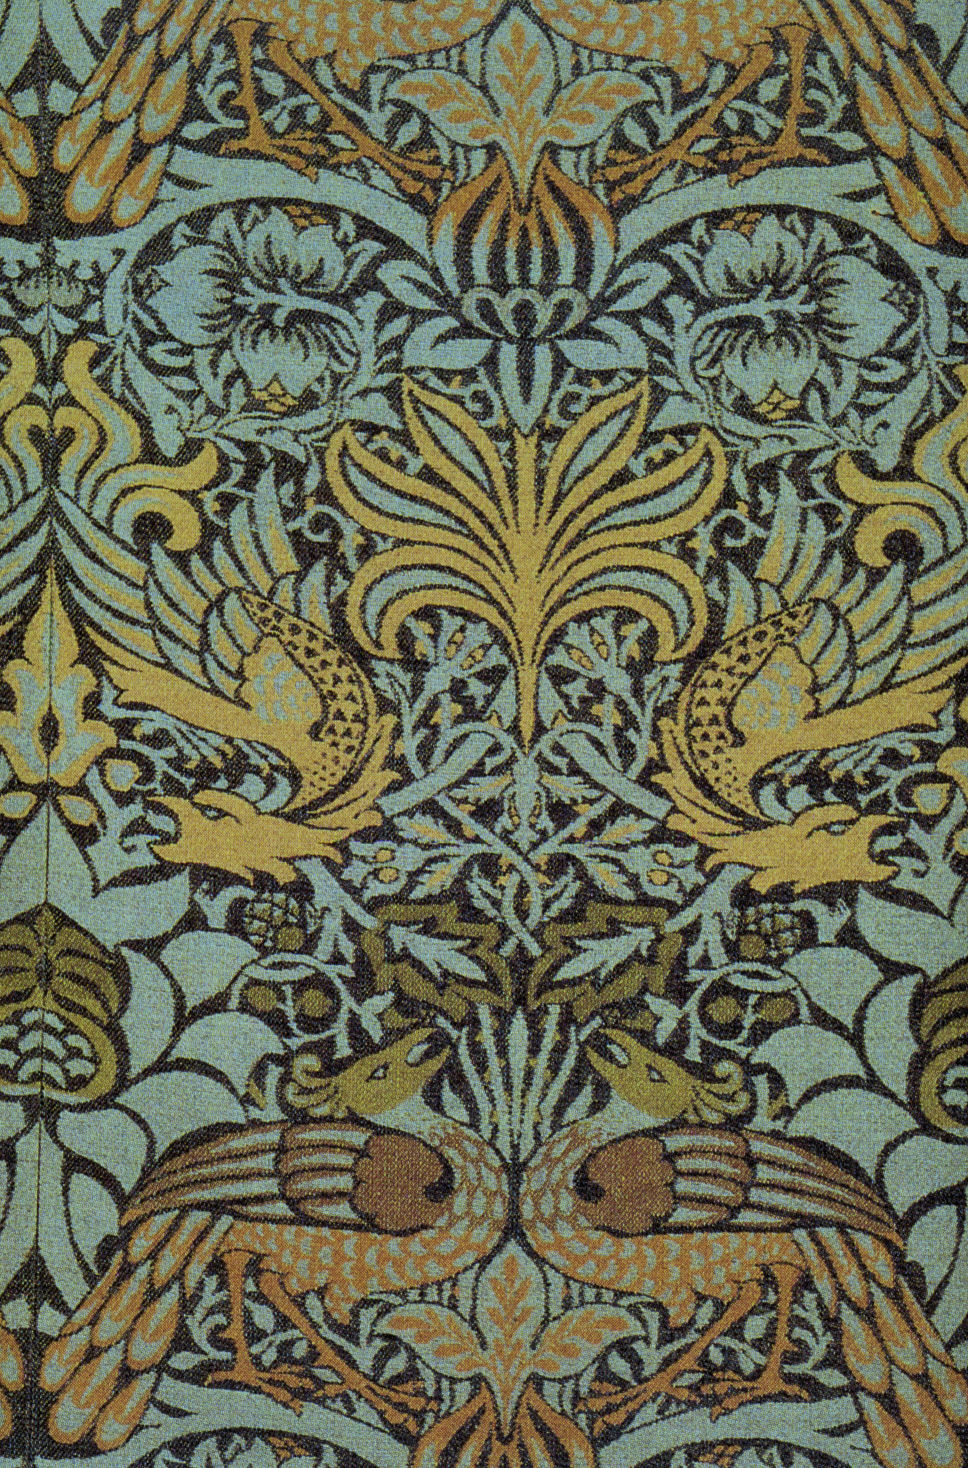 Peacock and dragon woven wool furnishing fabric 1878 william morris wiki - Papier peint art nouveau ...